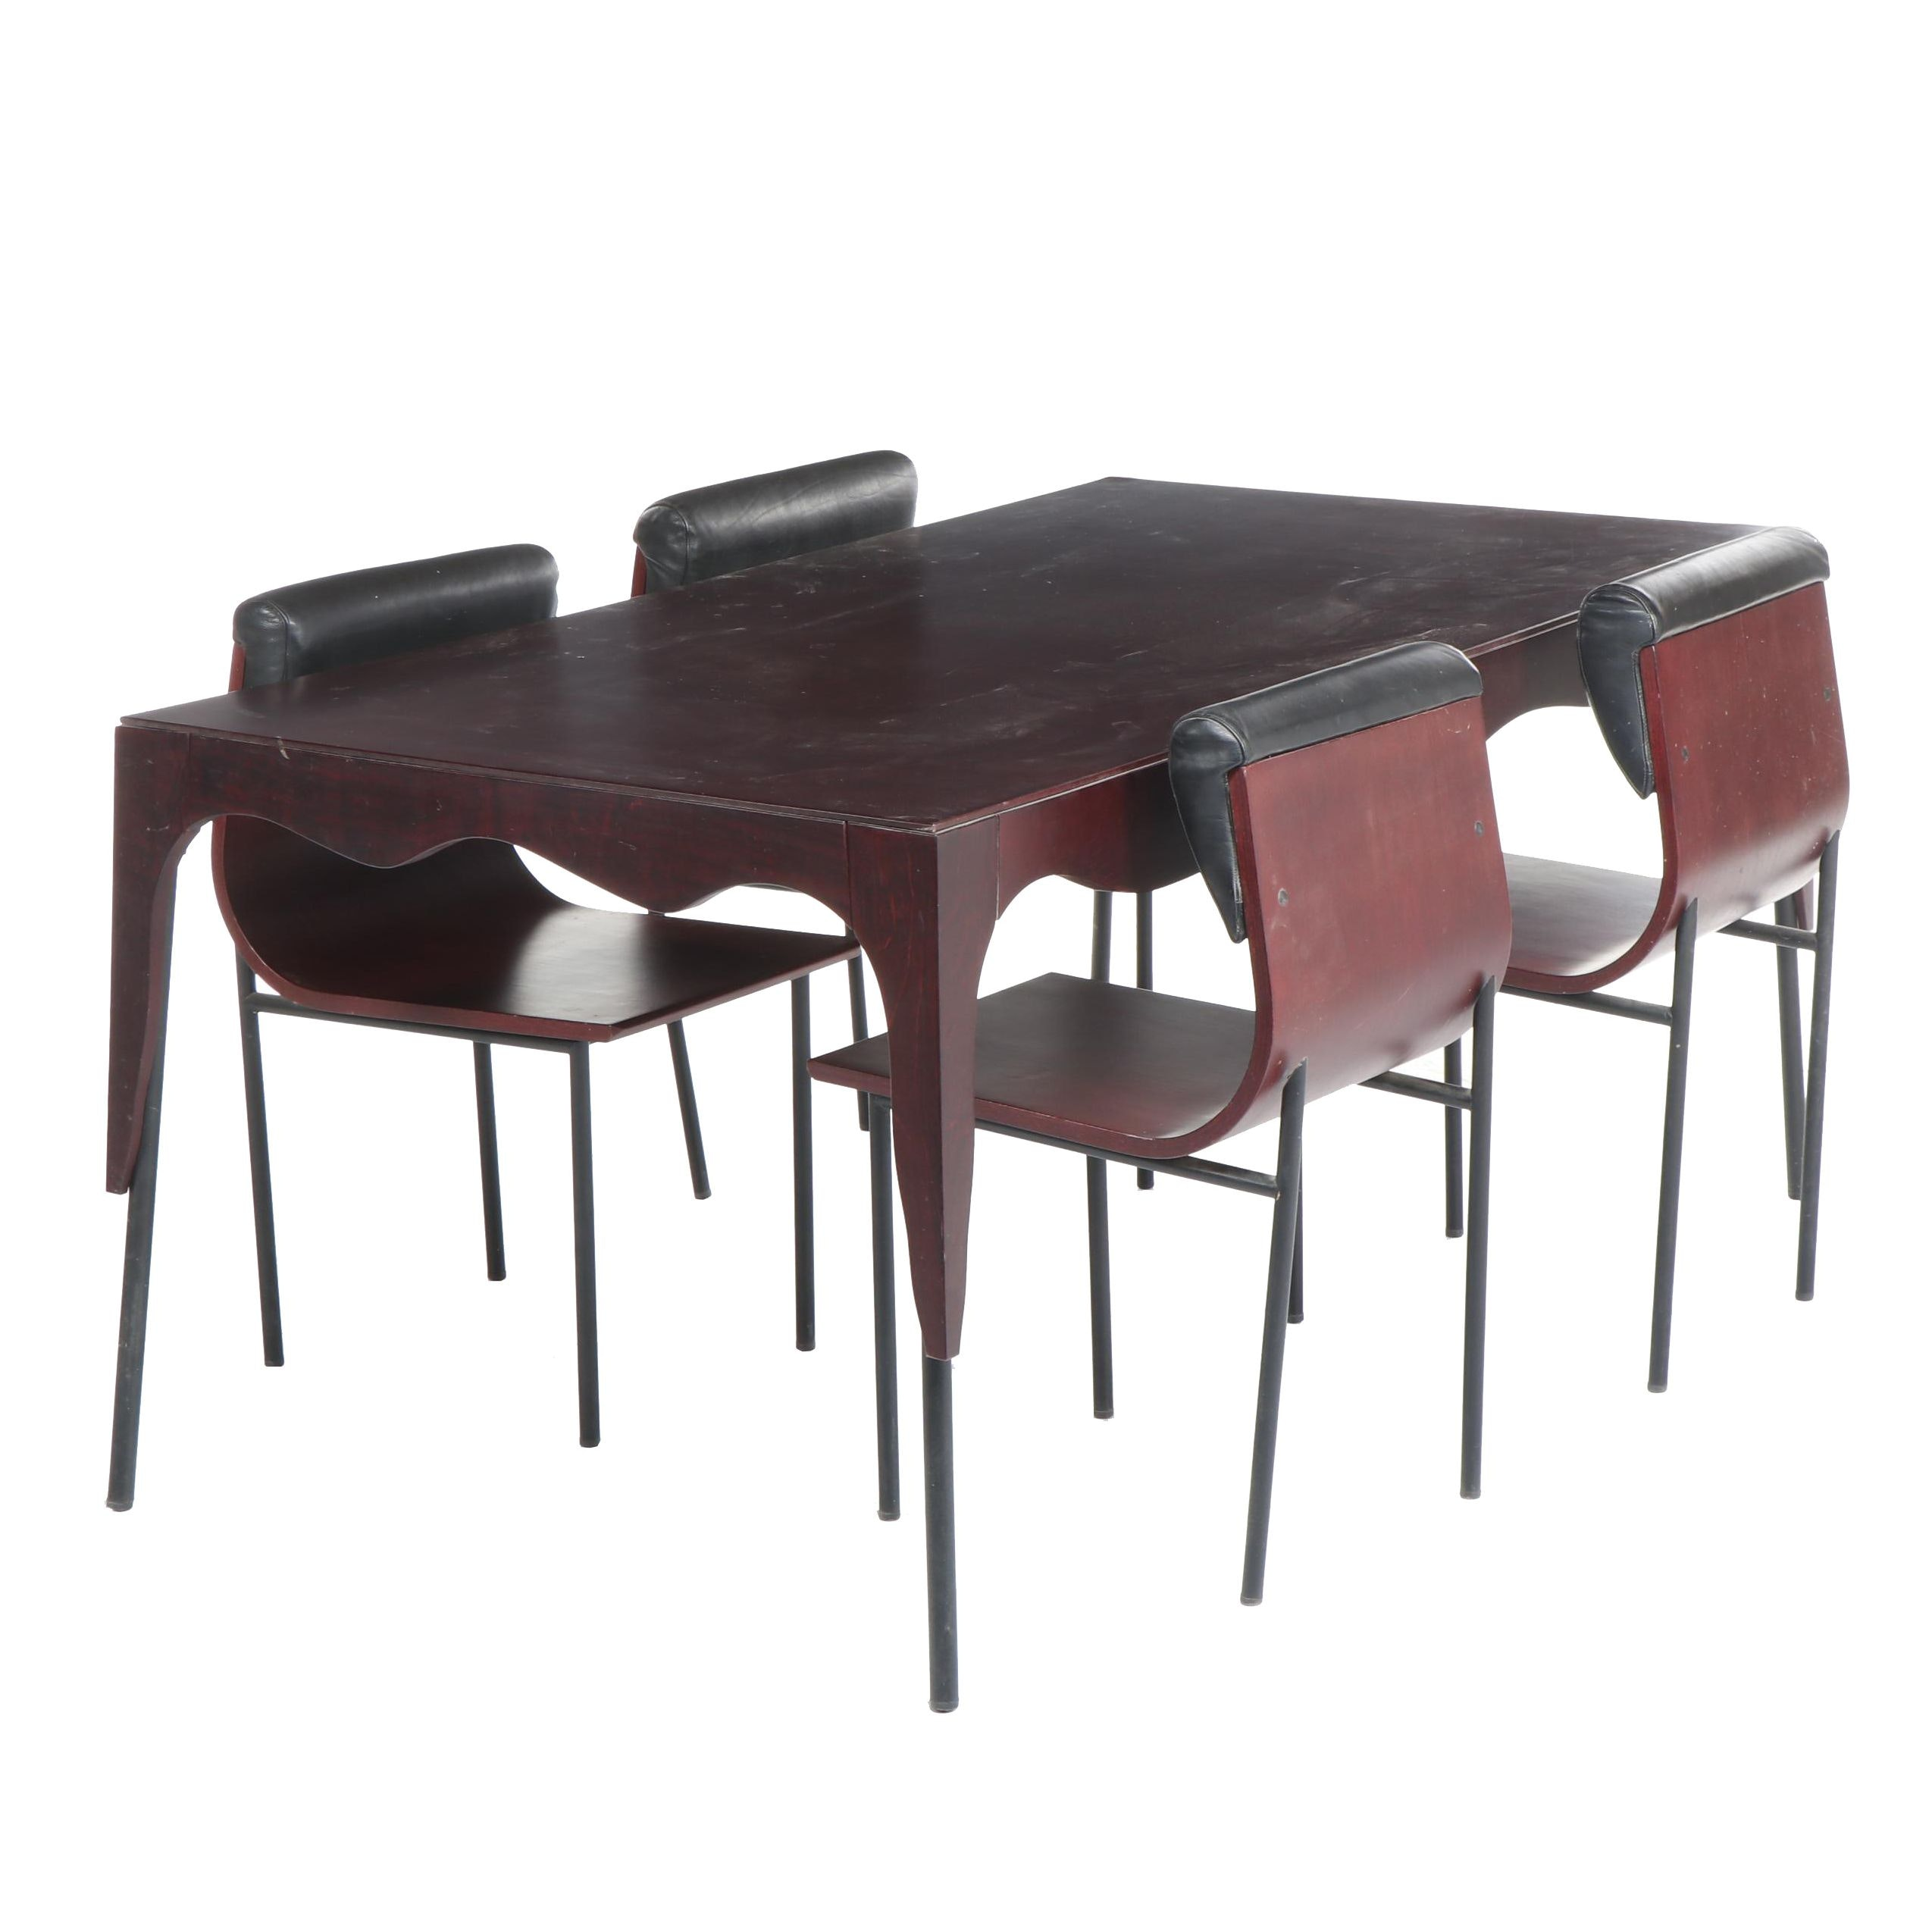 Contemporary Modern Style Dining Table Set